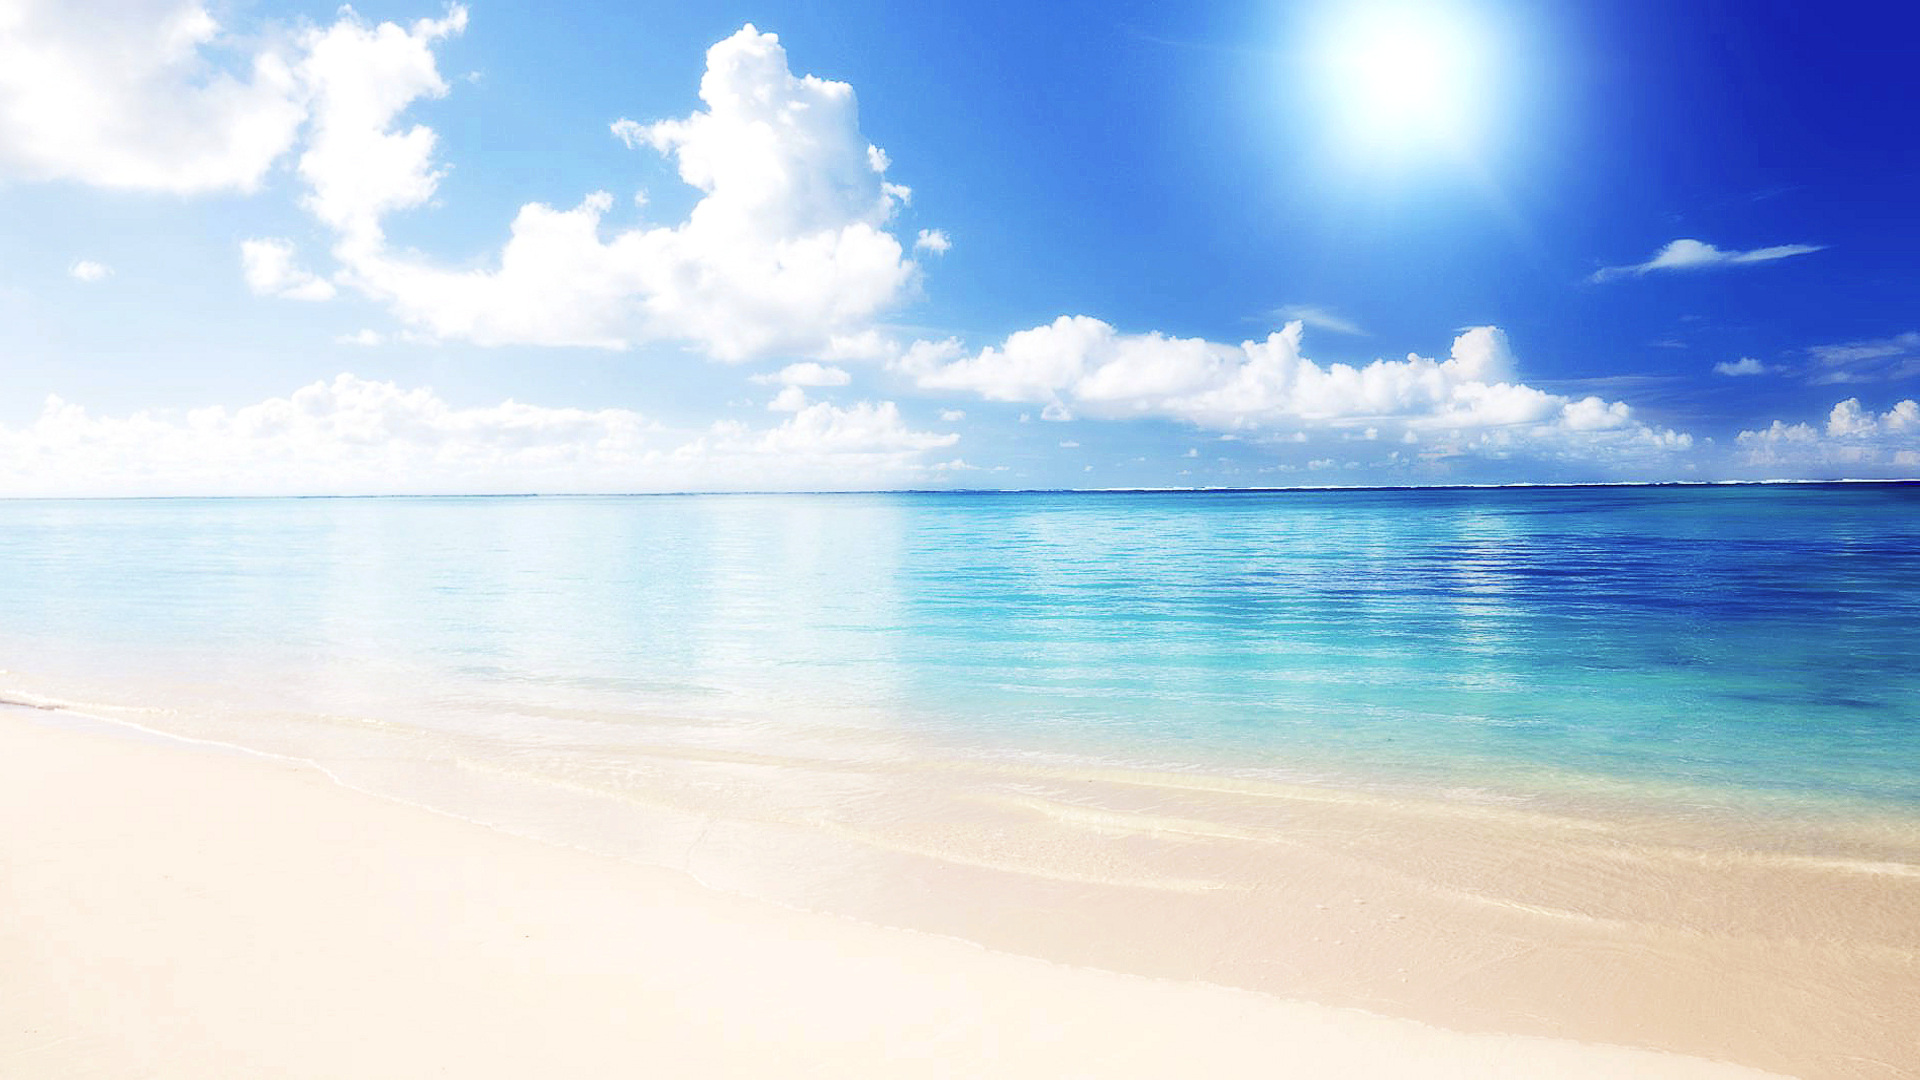 Hd wallpaper white background -  White Beach Hd Desktop Background